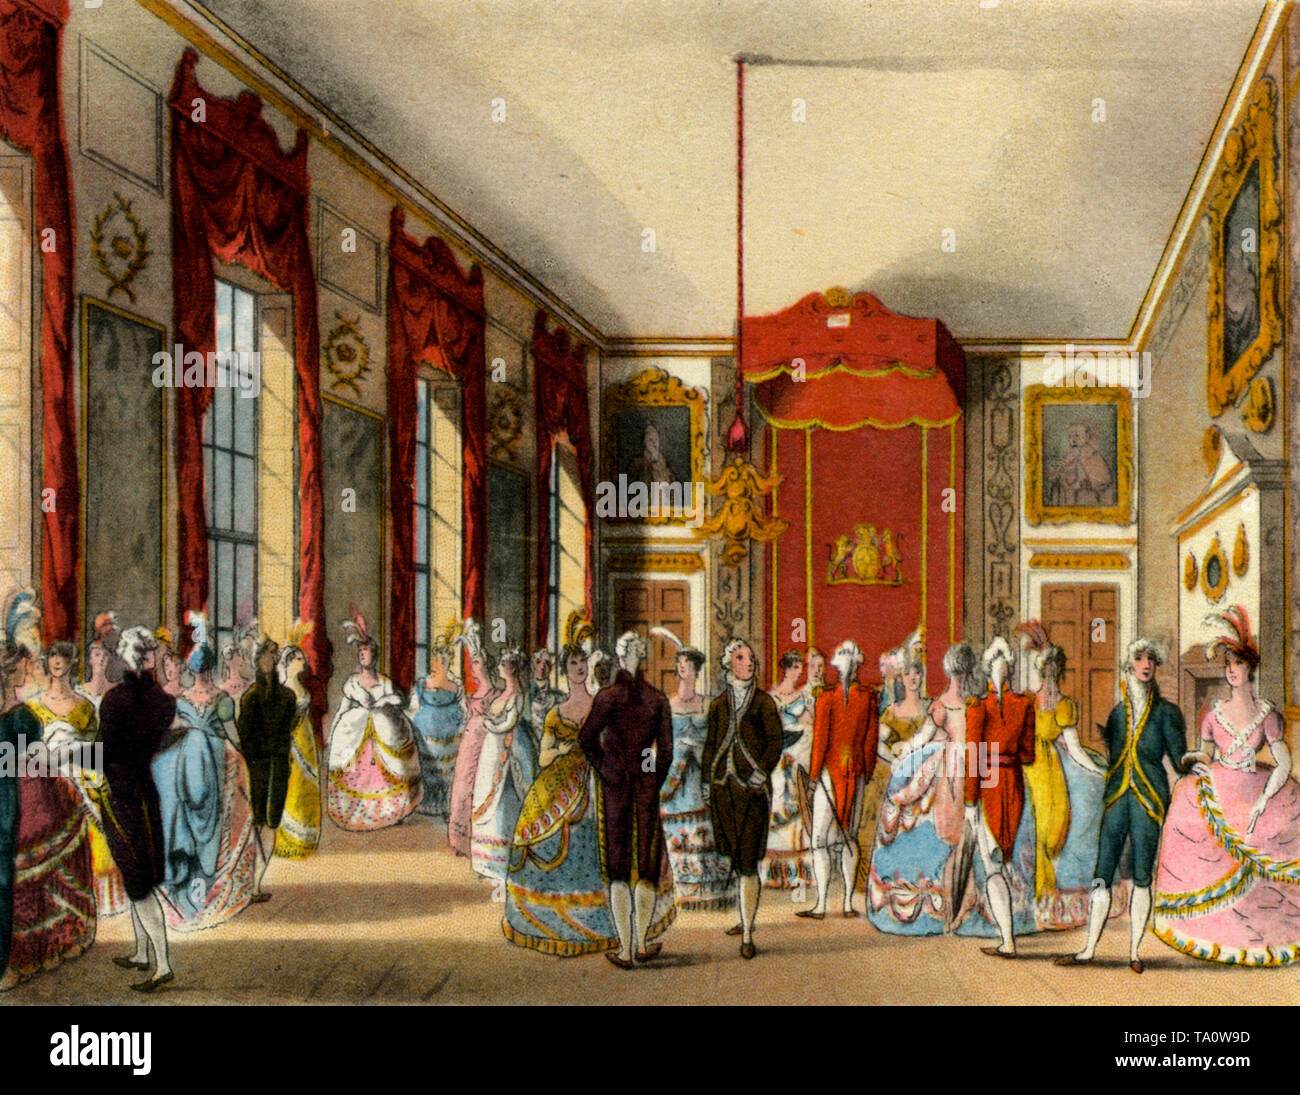 Drawing Room at St. James's Palace, c1808-1810. A print from 'The Microcosm of London', by William Henry Pyne (1770-1843). Artists: Thomas Rowlandson (1756-1827) and Auguste Charles Pugin (1762–1832). Commissioned by King Henry VIII St James's Palace is still the official residence of the British Sovereign. - Stock Image